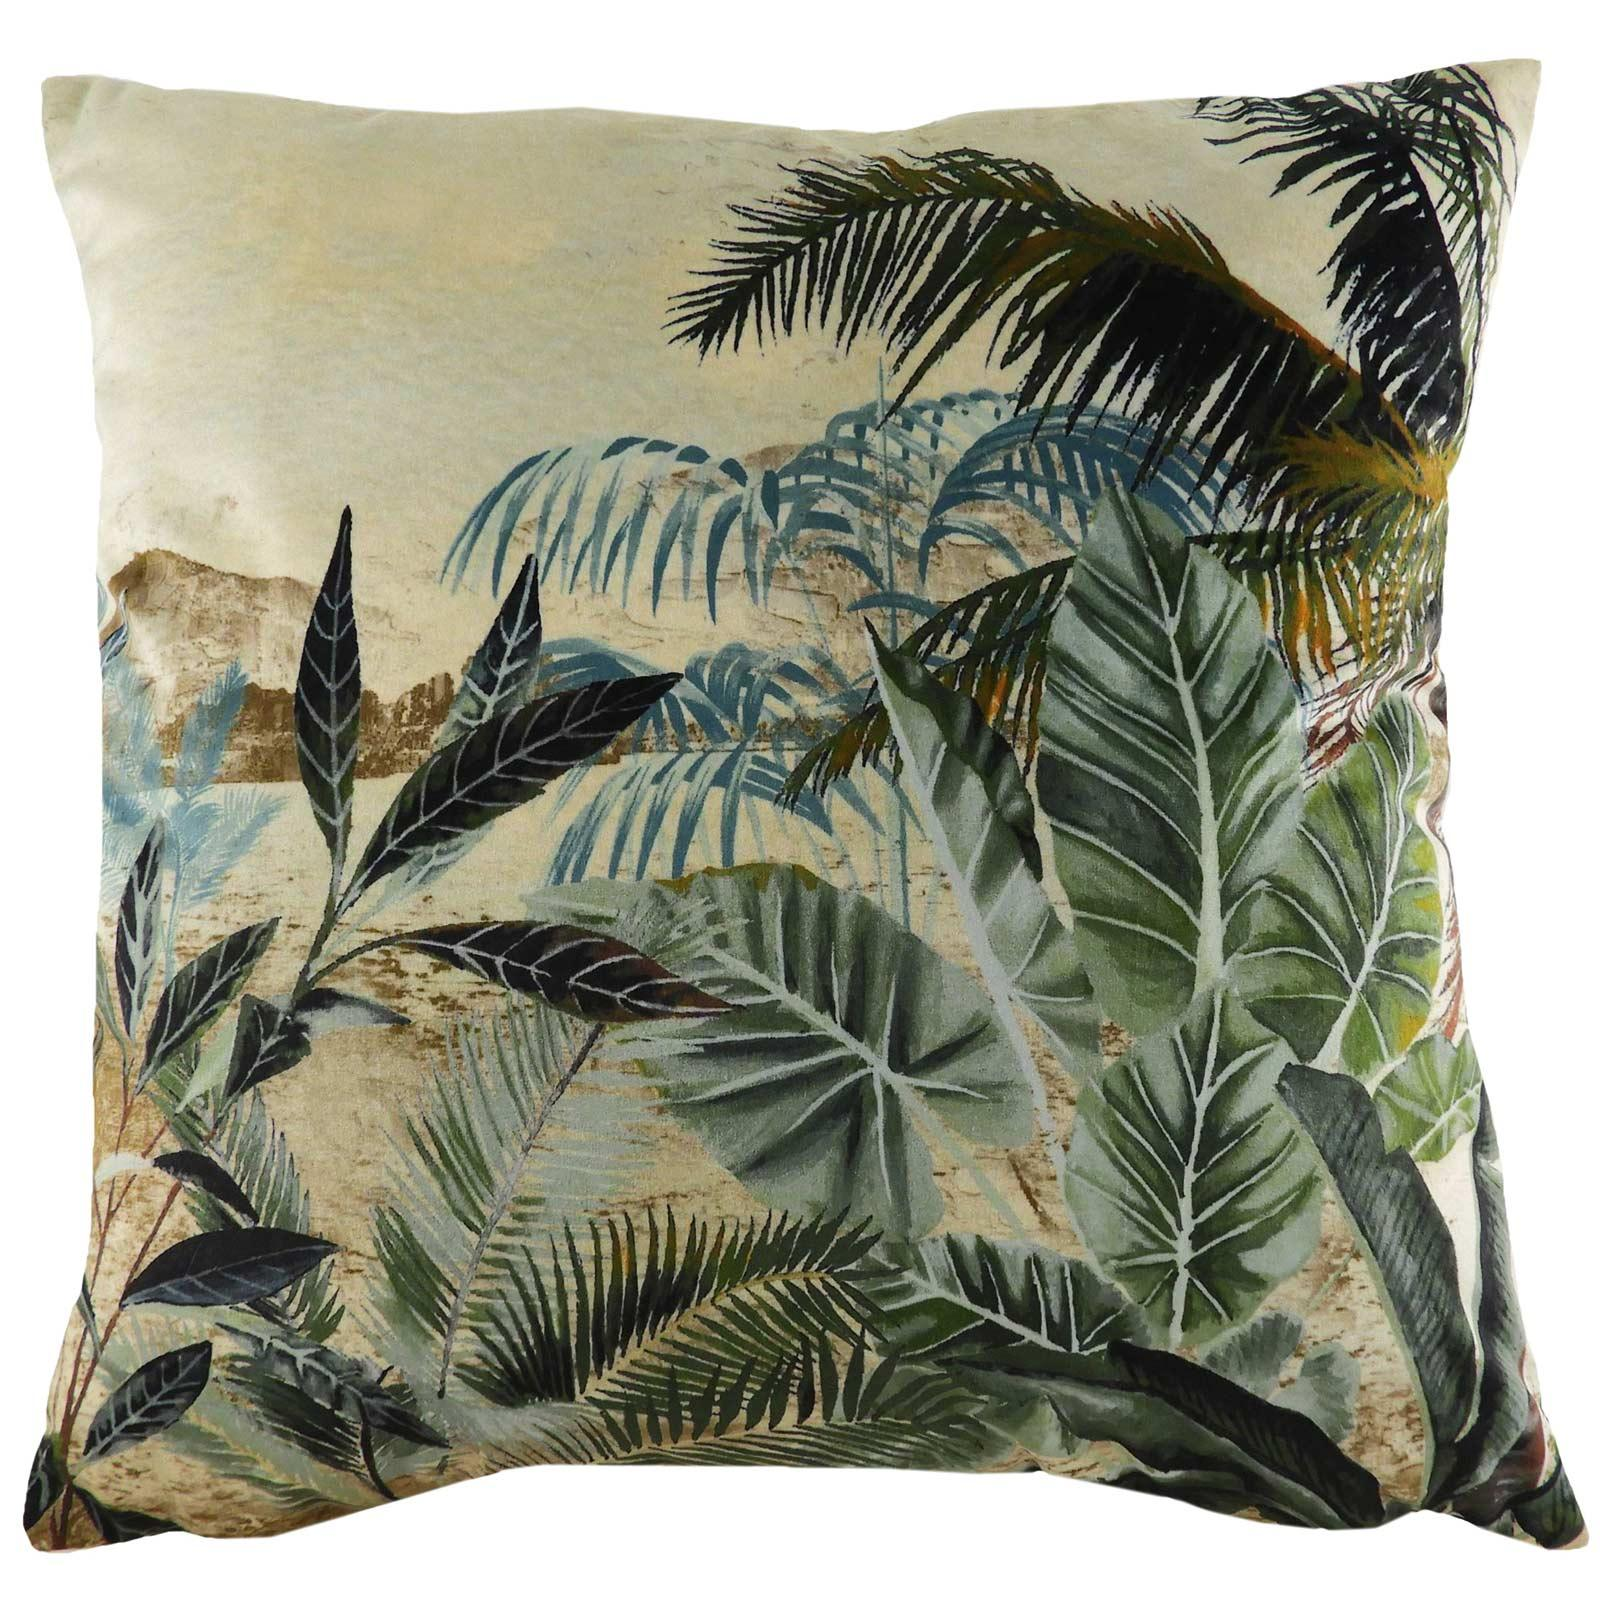 Kibale Vintage Jungle Scene Print Green Cushion Covers 17'' x 17'' -  - Ideal Textiles